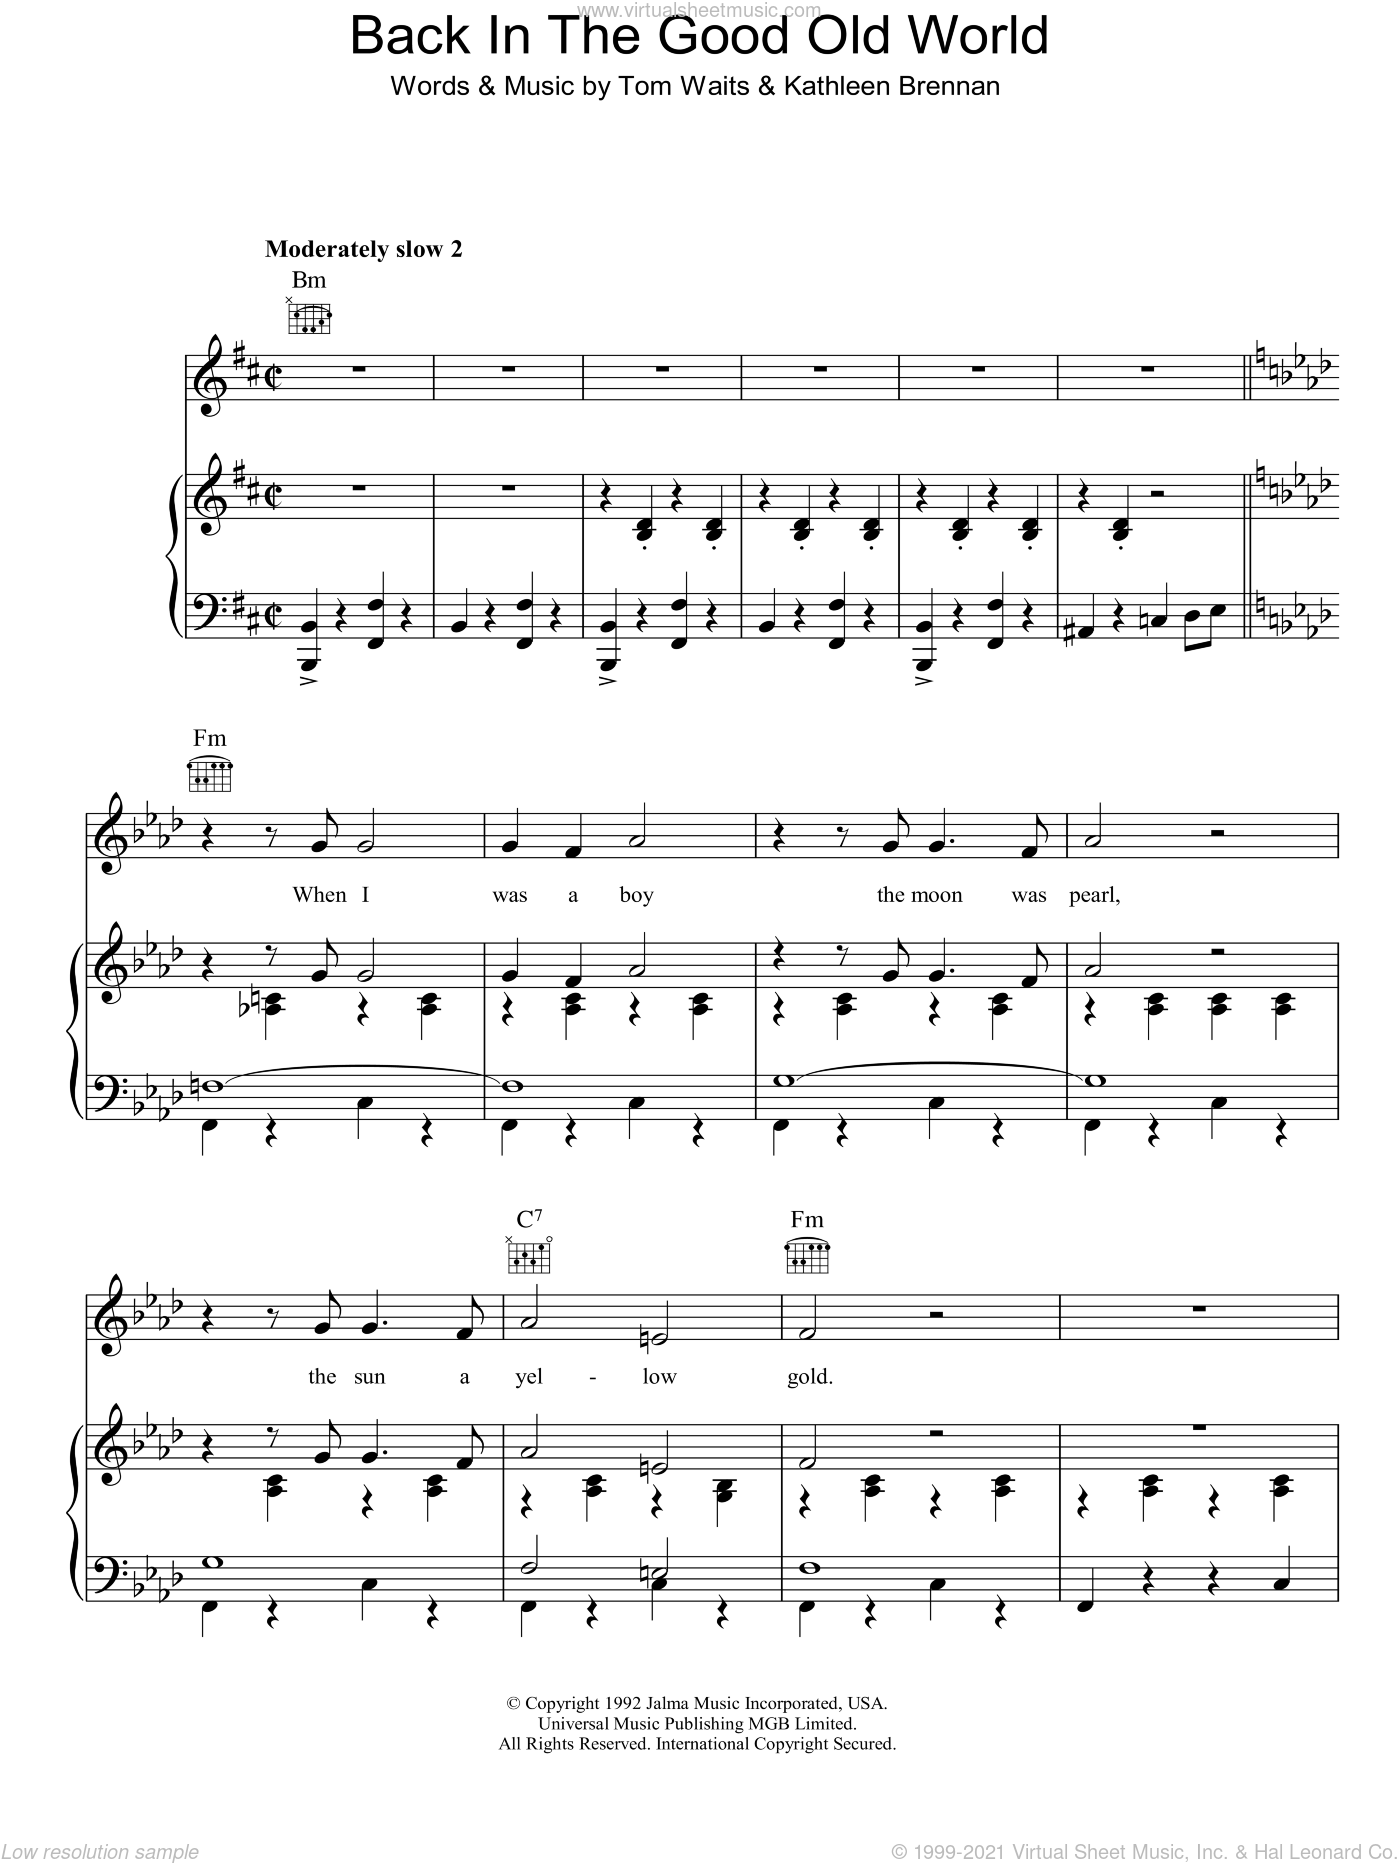 Back In The Good Old World sheet music for voice, piano or guitar by Kathleen Brennan